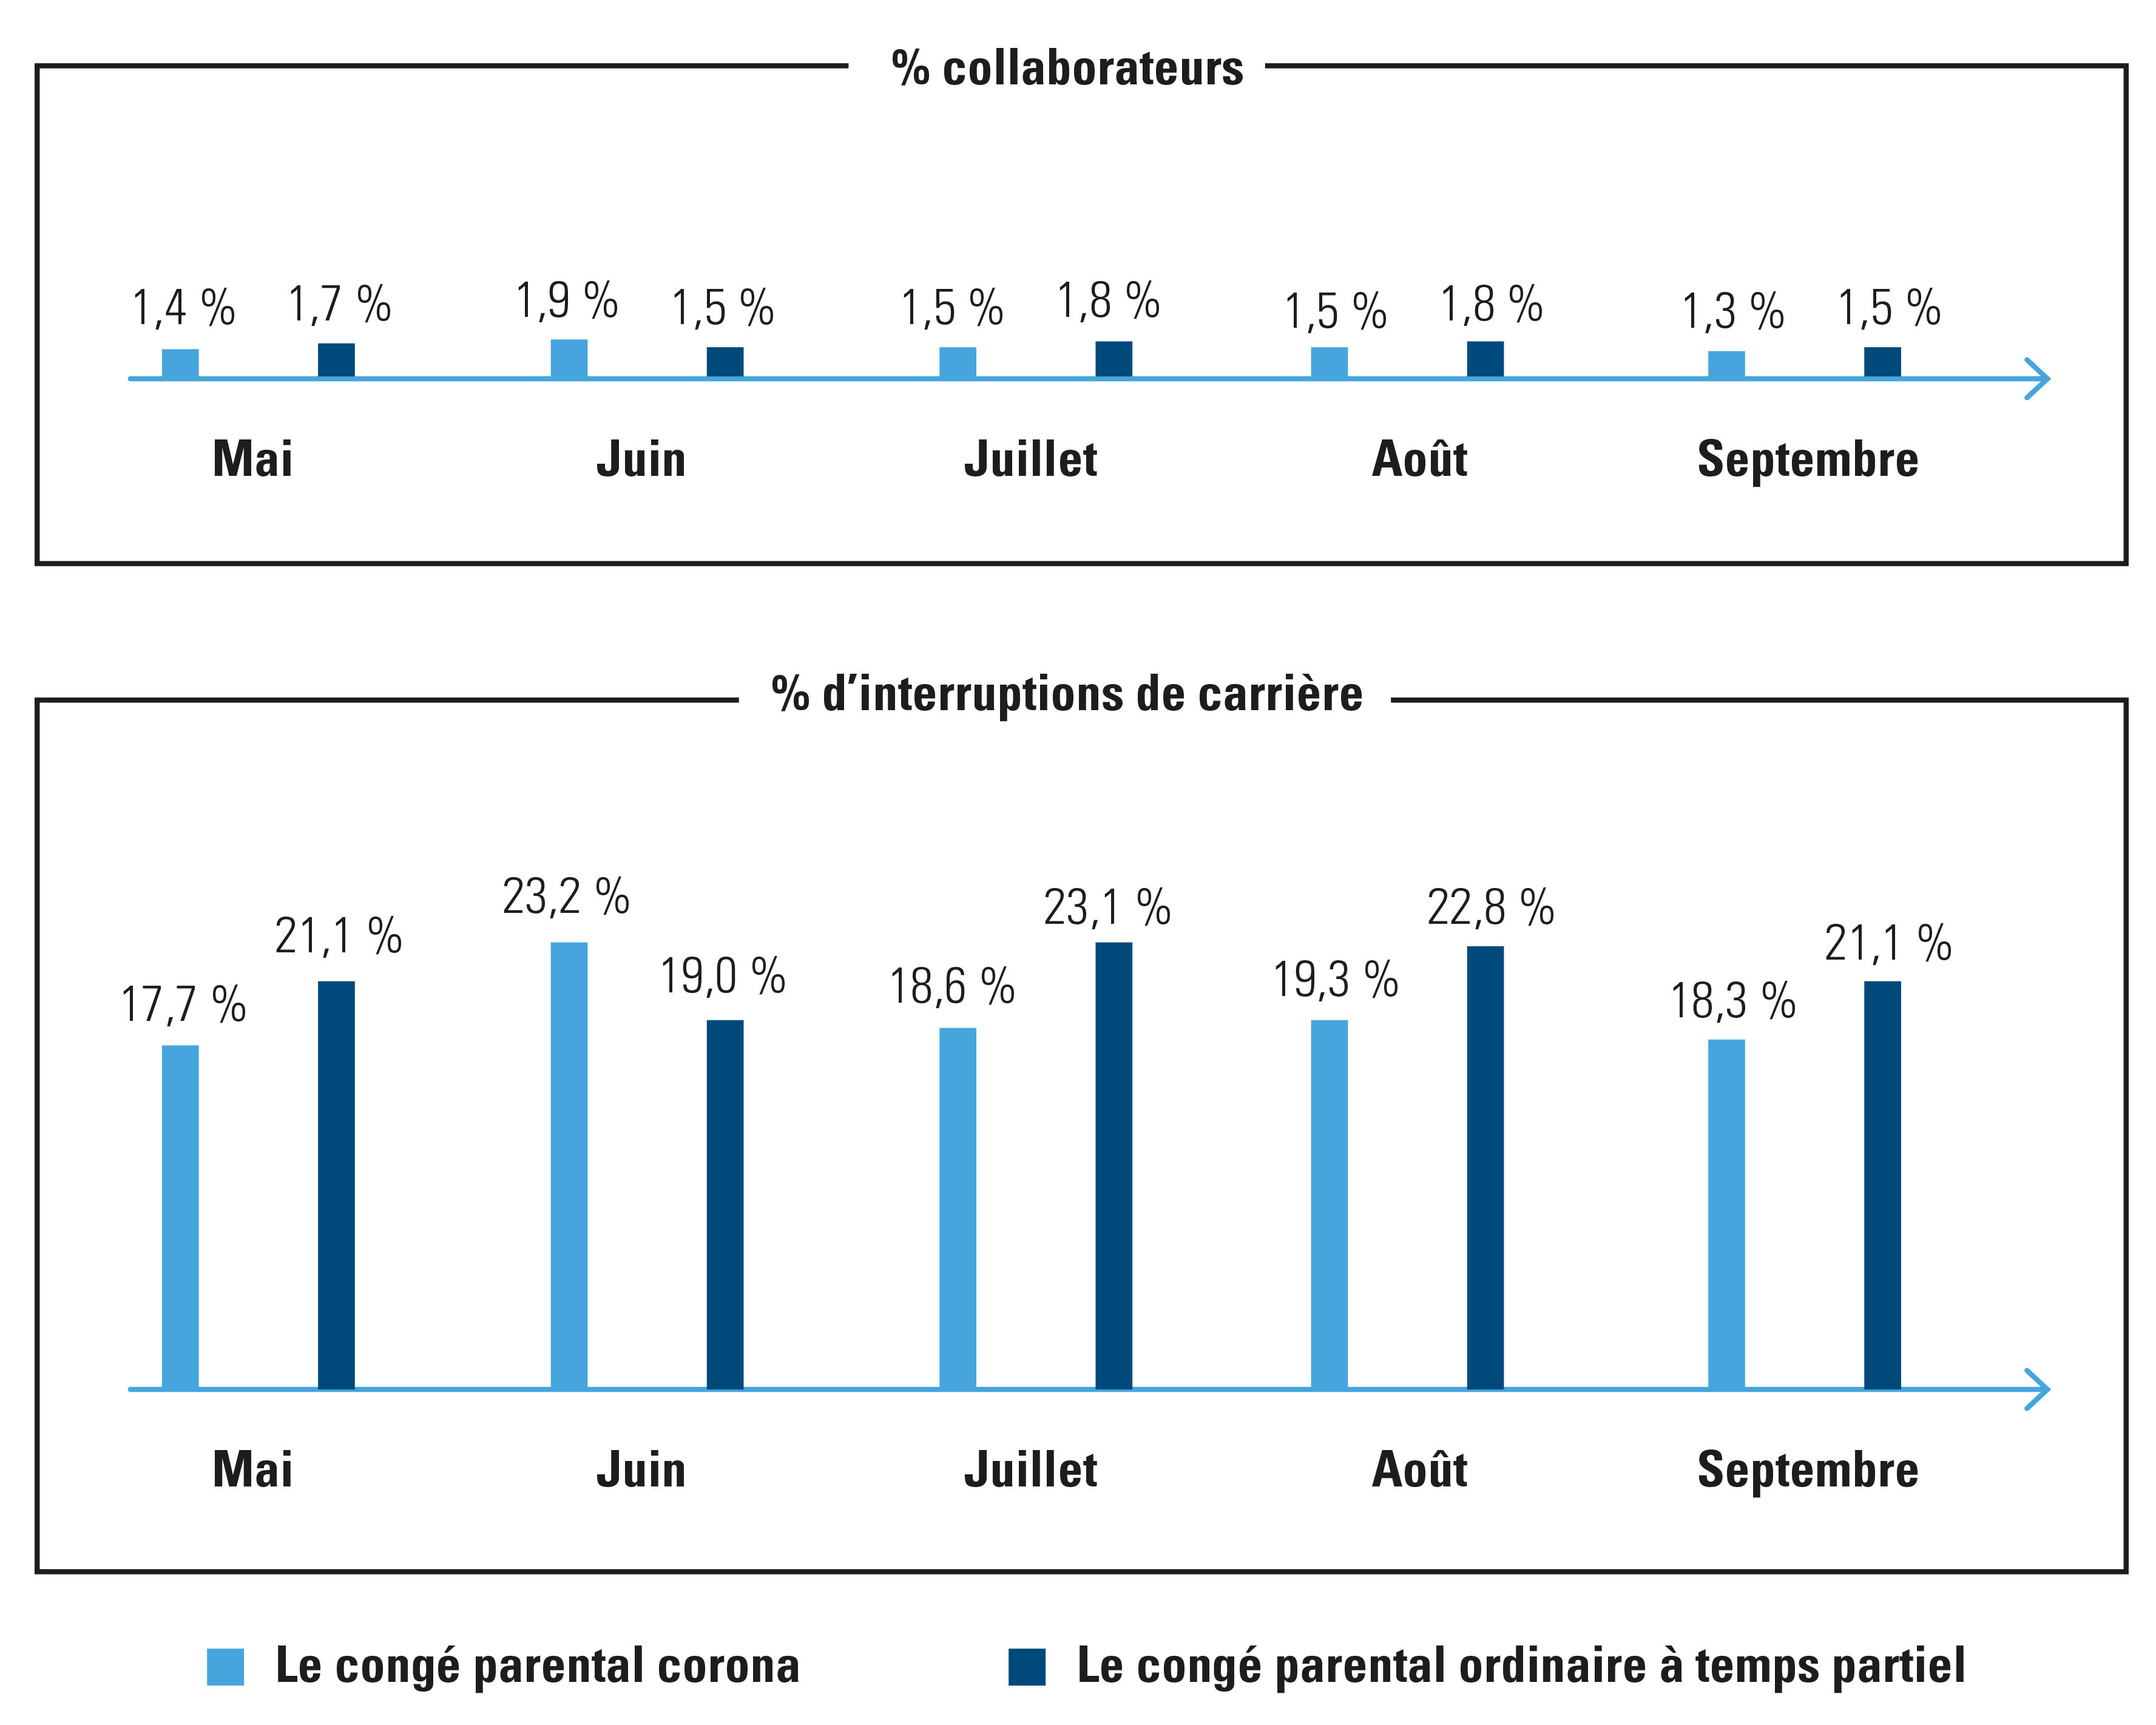 % de collaborateurs en congé parental et évolution 2019-2020